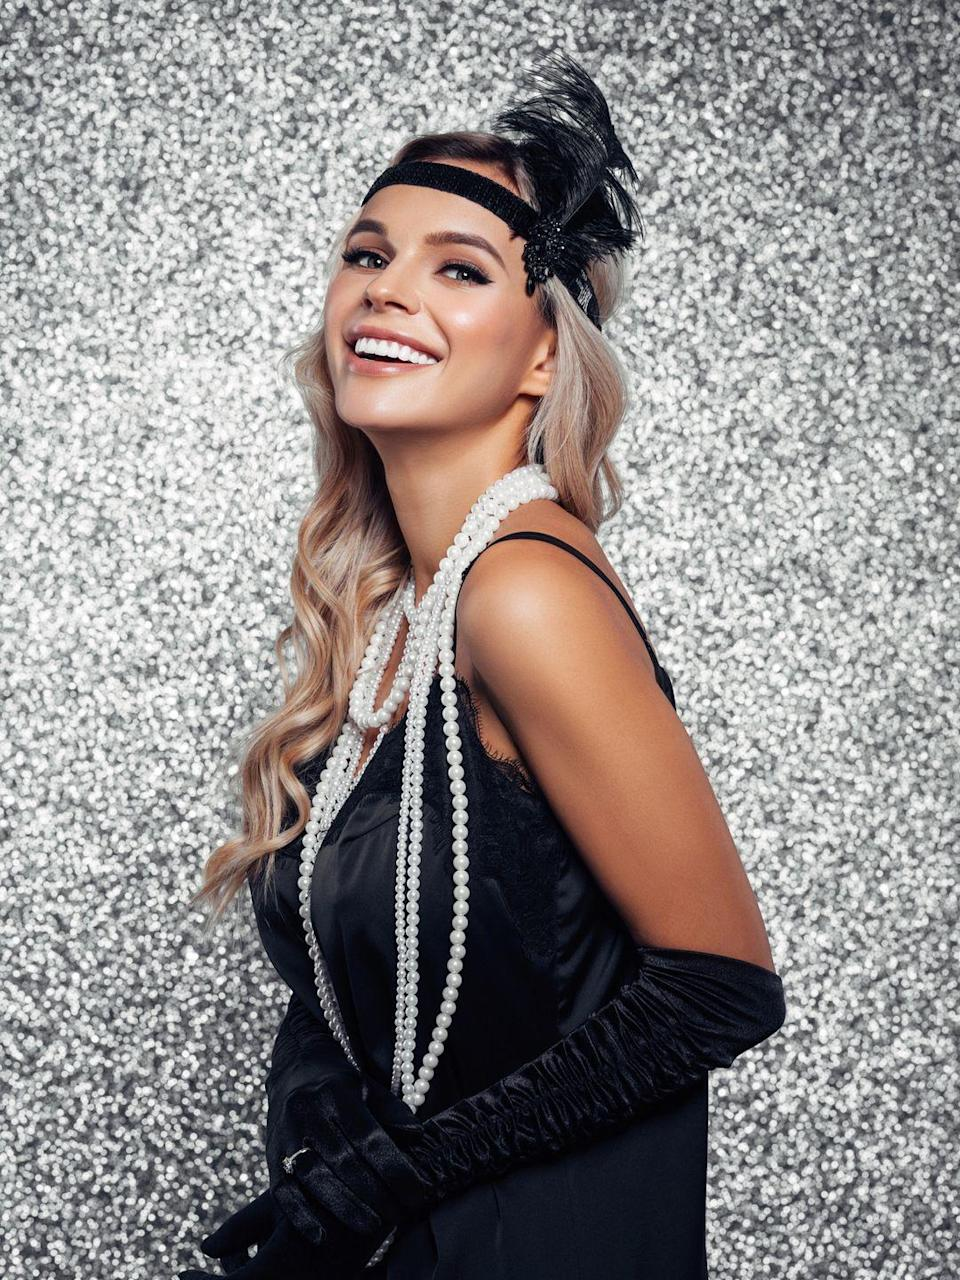 """<p>What better way is there to celebrate the '20s decade than to throw it back to the <em>first</em> Roaring Twenties? Get the countdown to the new decade started by donning your most glamorous flapper costumes, turning up the jazz, and of course breaking out all your <a href=""""https://www.goodhousekeeping.com/food-recipes/party-ideas/g643/great-gatsby-party/"""" rel=""""nofollow noopener"""" target=""""_blank"""" data-ylk=""""slk:Gatsby-inspired party"""" class=""""link rapid-noclick-resp"""">Gatsby-inspired party</a> decorations, like these <a href=""""https://www.amazon.com/Roaring-Twenties-Supplies-Gatsby-Vintage/dp/B07RSJFXJF/ref=sr_1_18_sspa?keywords=gatsby+themed+party&qid=1575390513&sr=8-18-spons&psc=1&spLa=ZW5jcnlwdGVkUXVhbGlmaWVyPUEzM0oyTUlMWURFQ0pKJmVuY3J5cHRlZElkPUEwODIxOTQyVVE4REVCN1gxVlc3JmVuY3J5cHRlZEFkSWQ9QTAzNzE2NDhNQ0oyRk9OV1A4OUsmd2lkZ2V0TmFtZT1zcF9tdGYmYWN0aW9uPWNsaWNrUmVkaXJlY3QmZG9Ob3RMb2dDbGljaz10cnVl&tag=syn-yahoo-20&ascsubtag=%5Bartid%7C10055.g.30105731%5Bsrc%7Cyahoo-us"""" rel=""""nofollow noopener"""" target=""""_blank"""" data-ylk=""""slk:1920's themed photo booth props"""" class=""""link rapid-noclick-resp"""">1920's themed photo booth props</a>.</p>"""